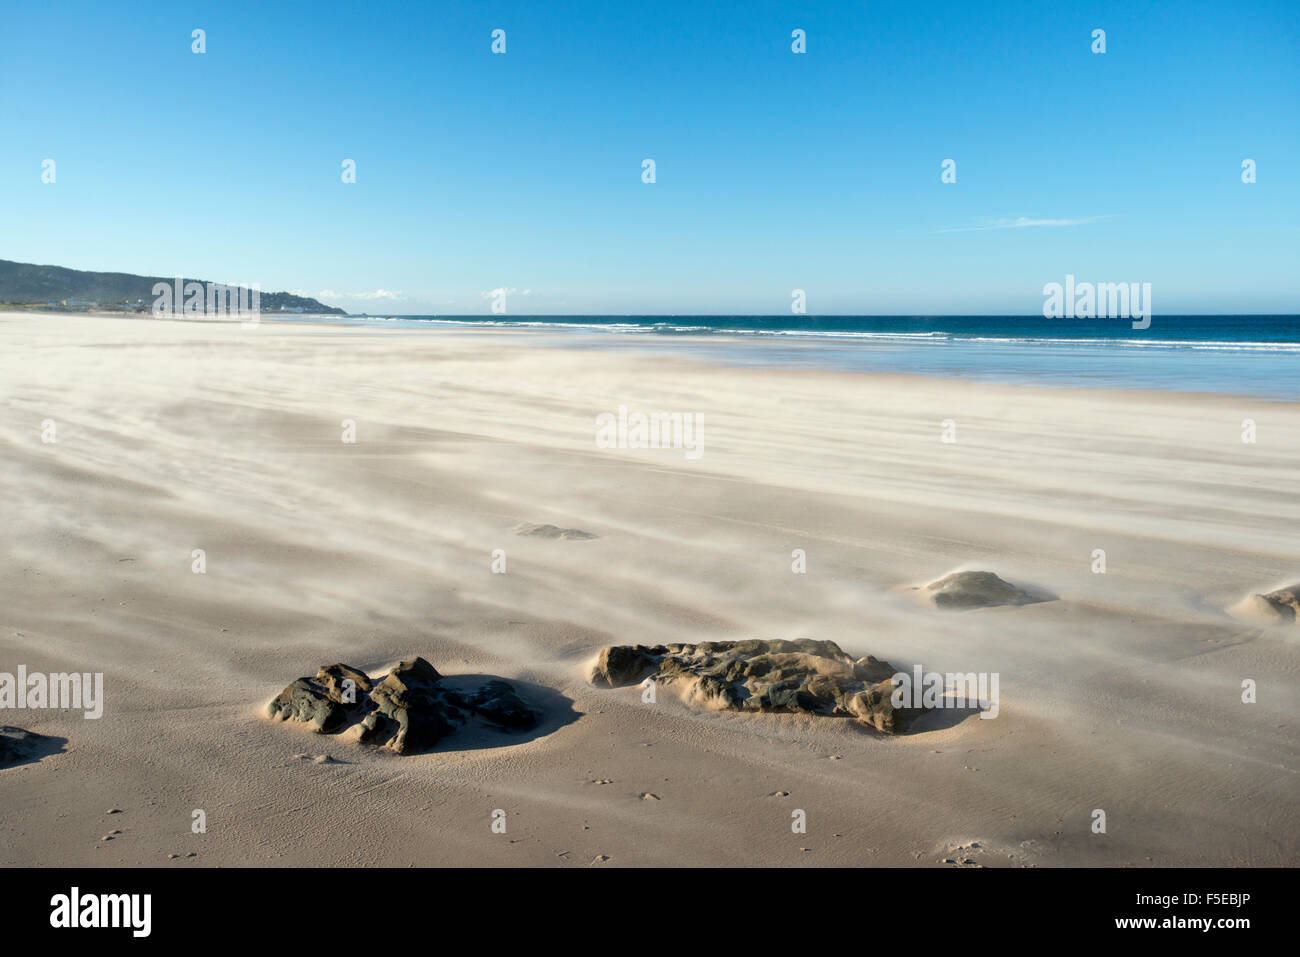 Miles of deserted beaches on the coast between Barbate and Zahara de los Atunes in Andalucia, Spain, Europe - Stock Image